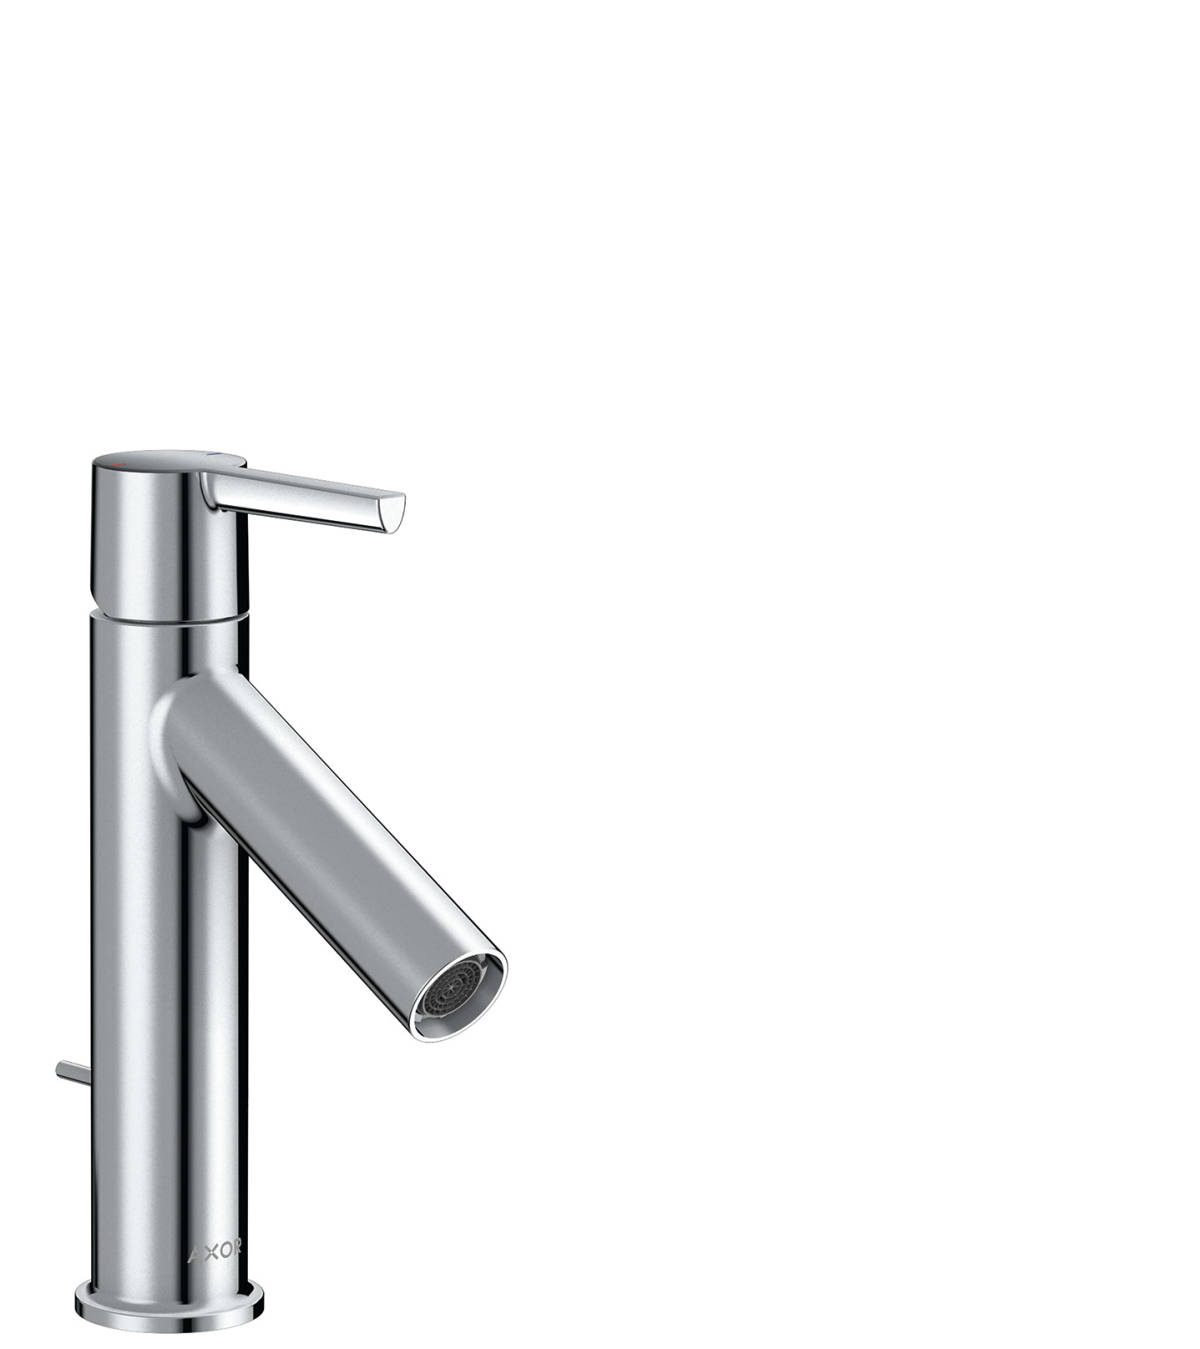 Single lever basin mixer 100 with lever handle and pop-up waste set, Polished Chrome, 10001020